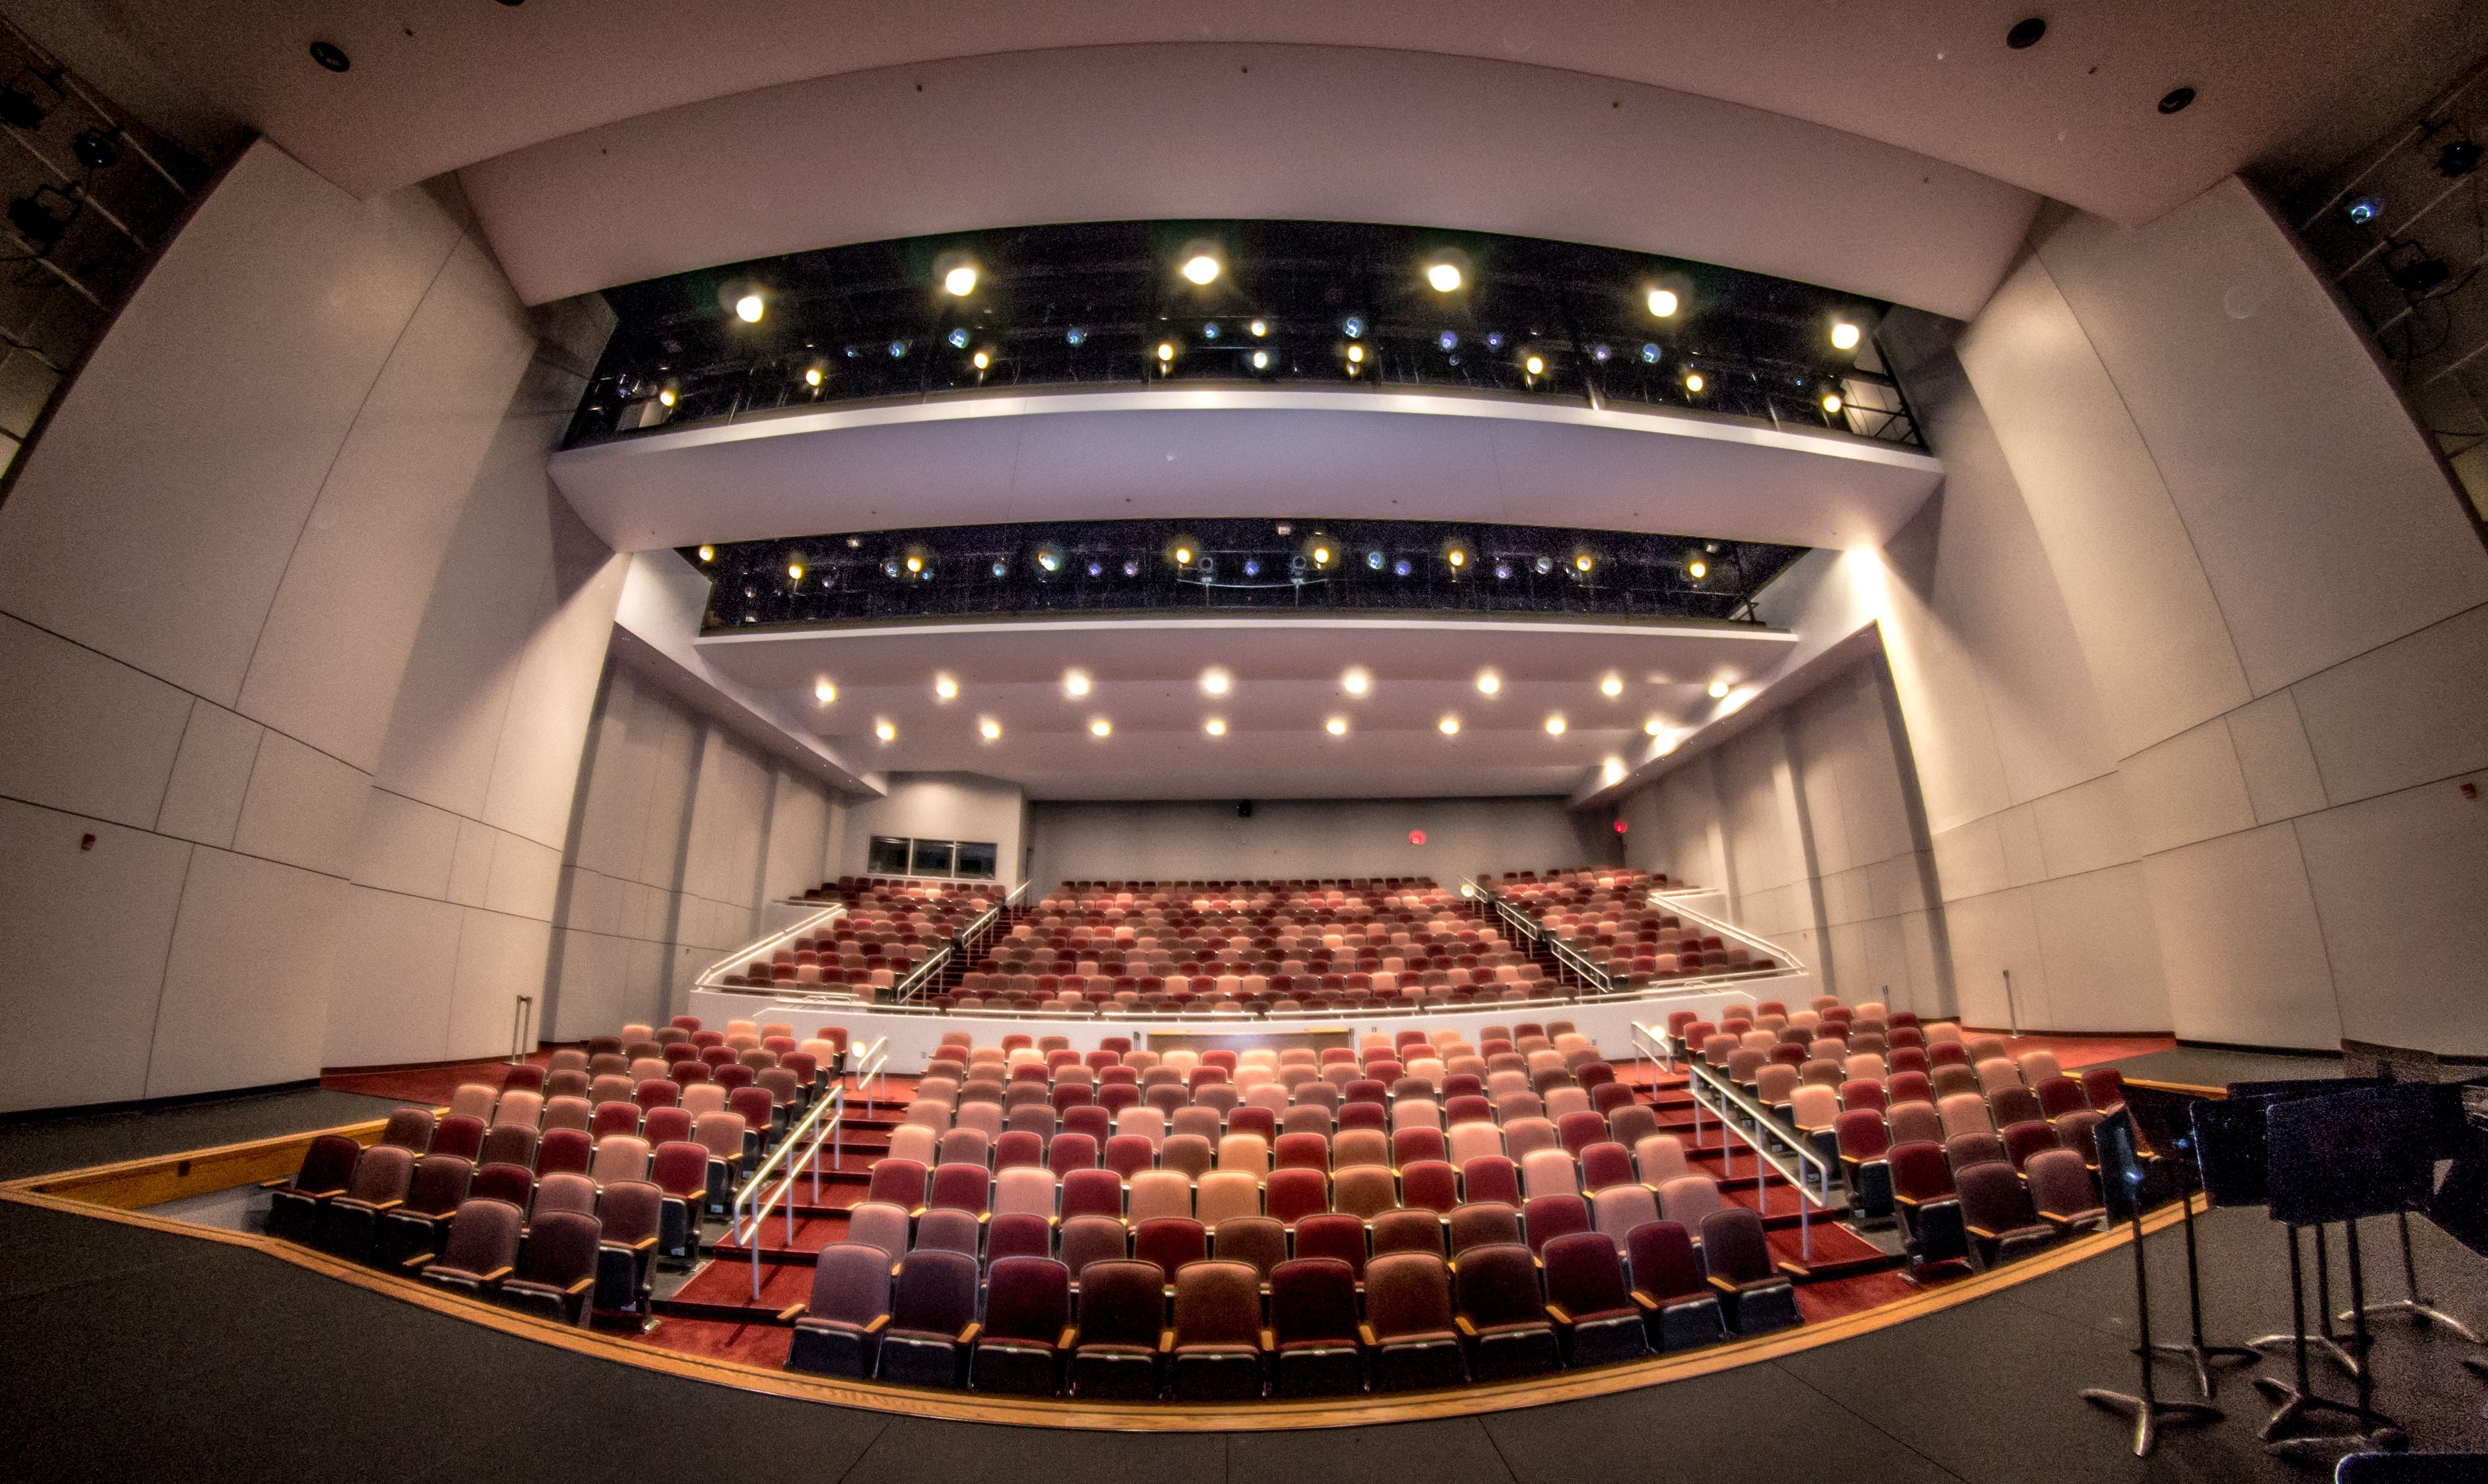 Theater Seating House Lighting Seating Charts Seating Theater Seating